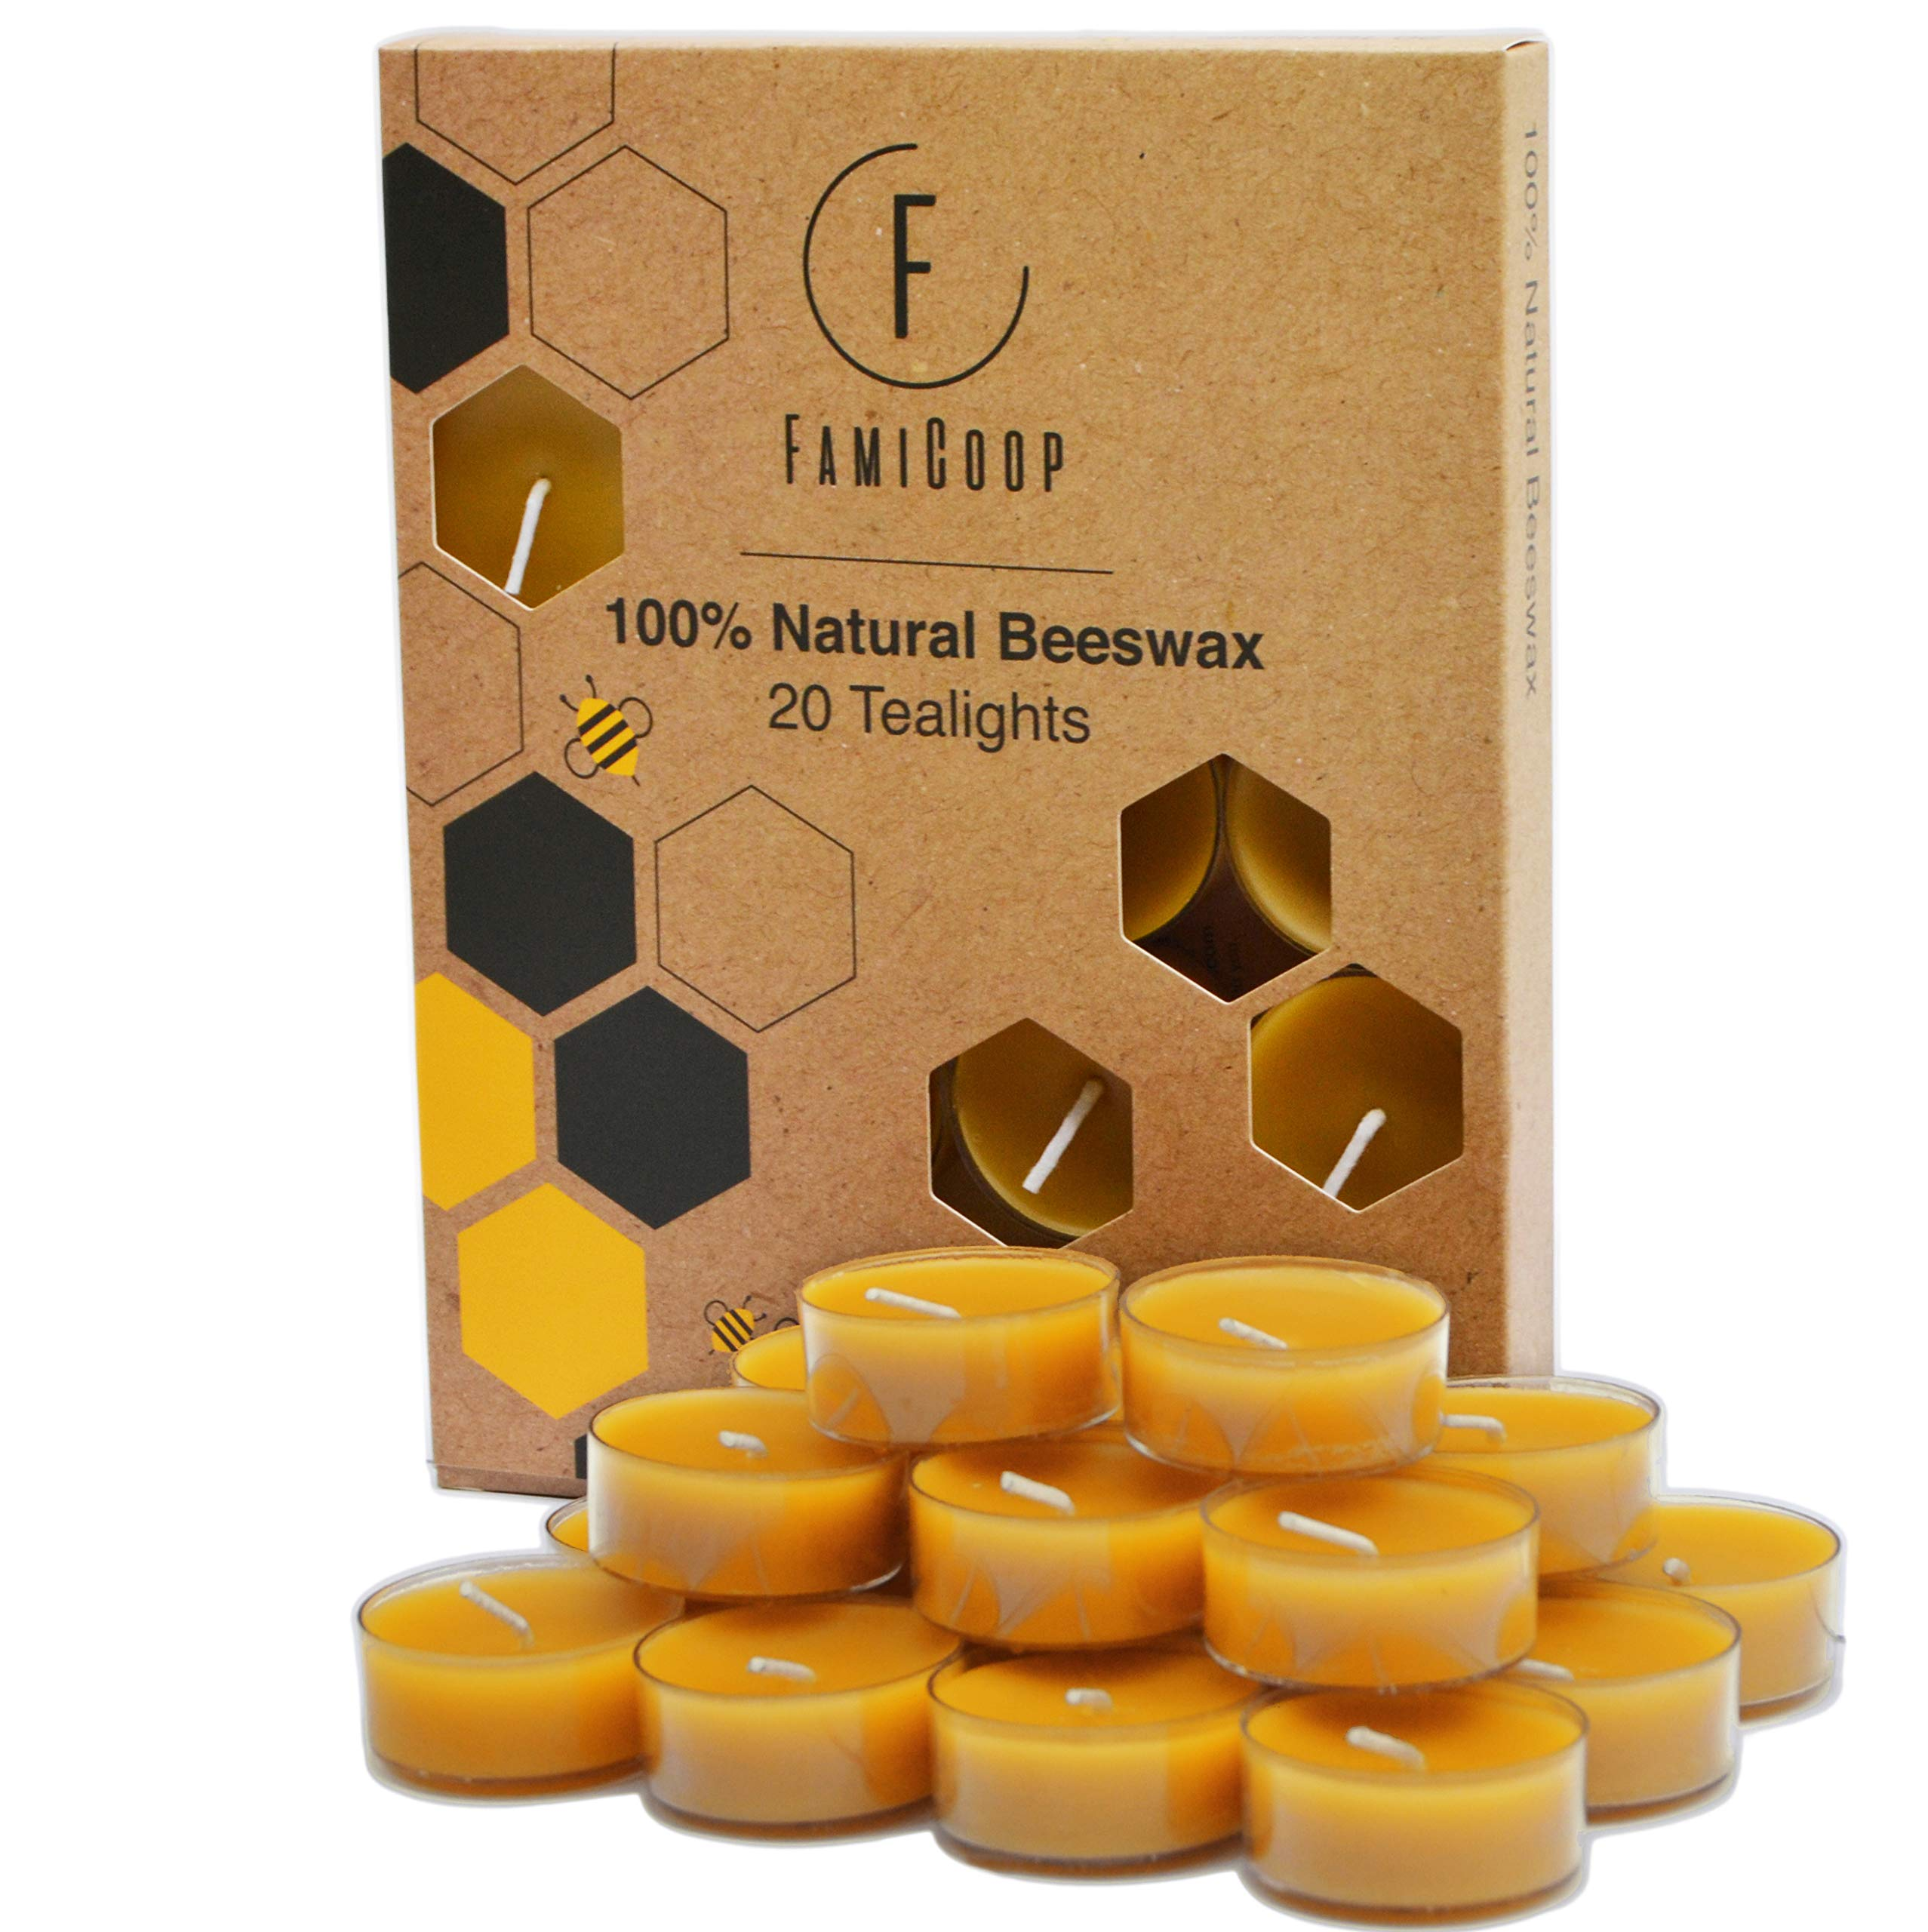 100% Pure Beeswax Candles - 20PC Non Toxic Candles - Fill Your Home With the Warm Glow of Natural Beeswax Tealight Candles - Makes the Perfect Gift by FamiCoop (Image #1)